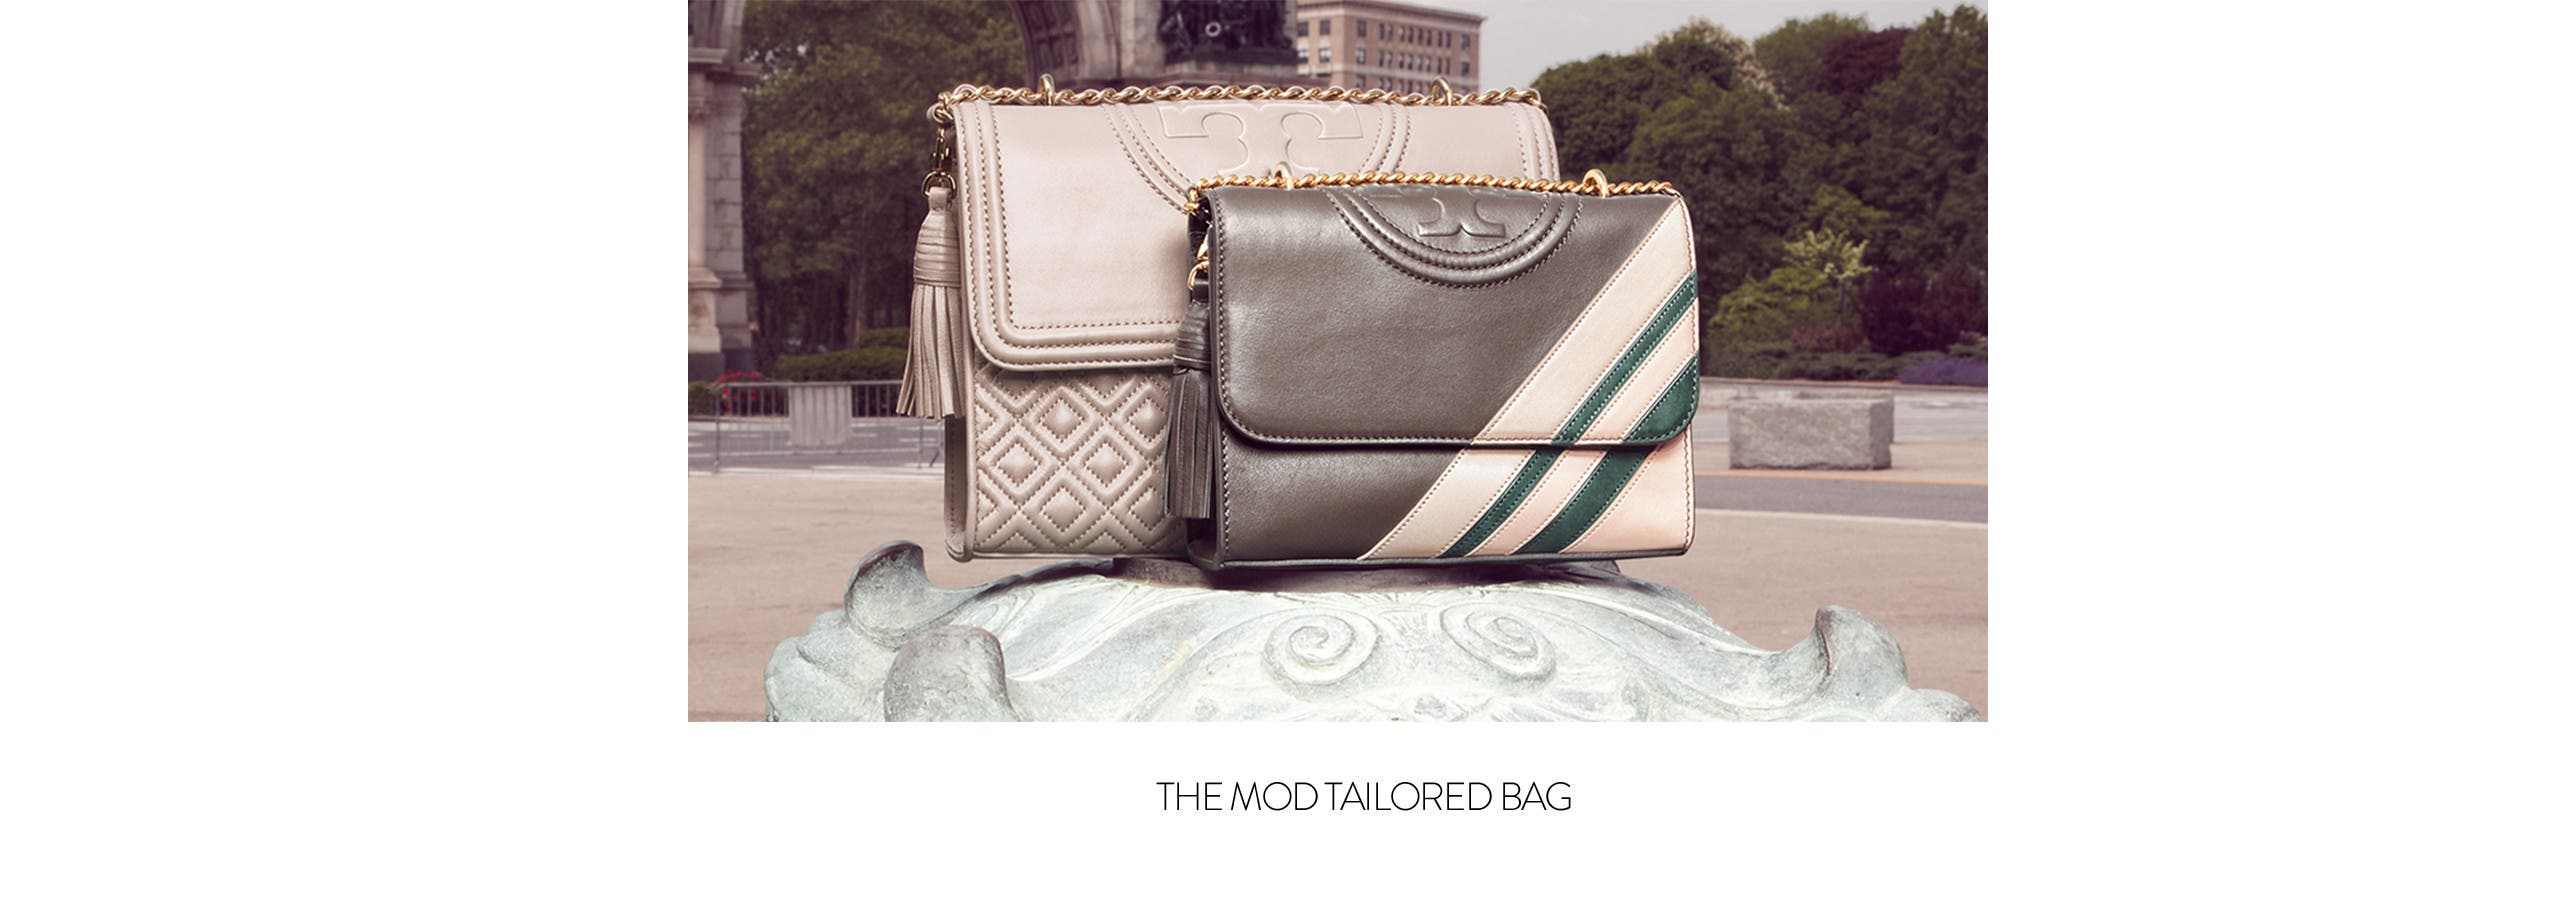 The mod tailored bag.